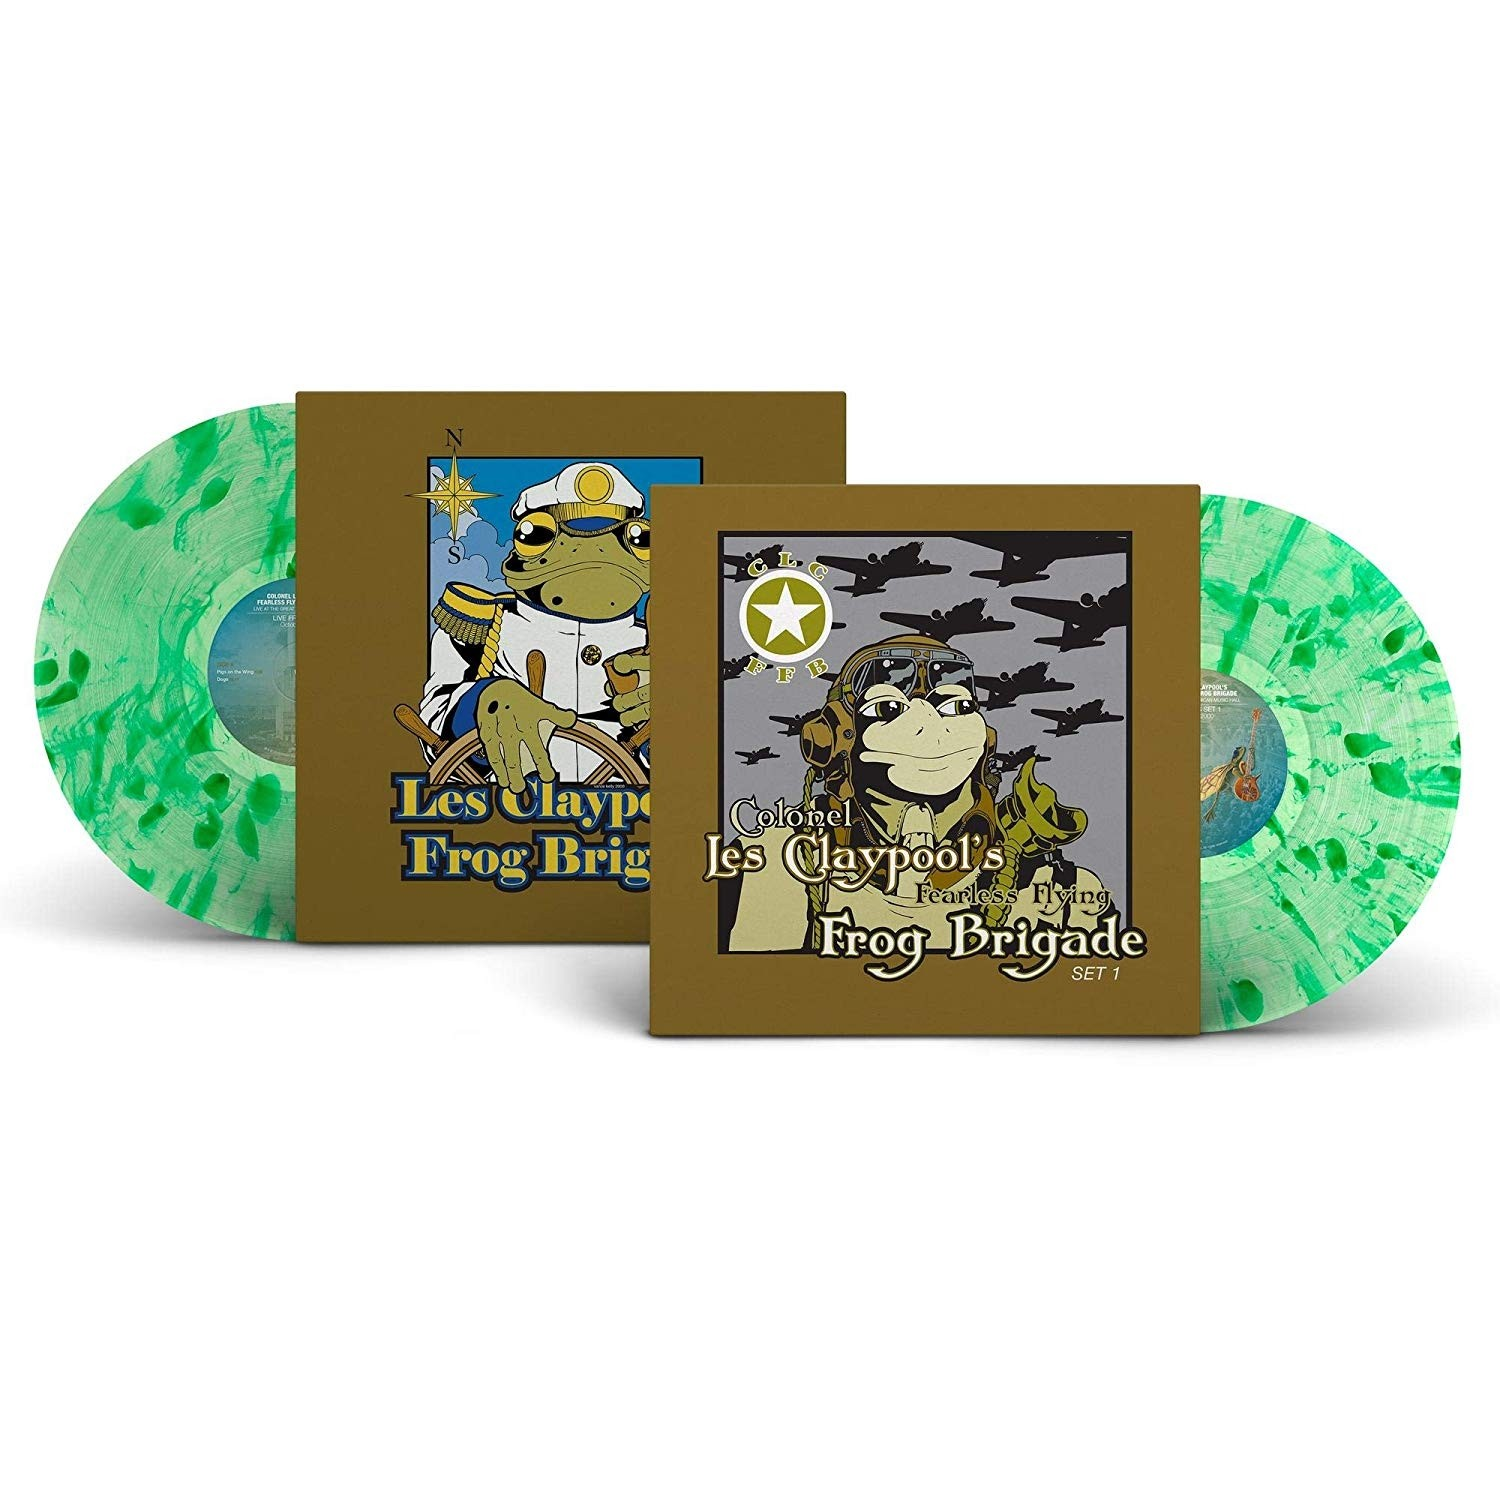 The Les Claypool Frog Brigade - Live Frogs Sets 1 & 2 3XLP Vinyl